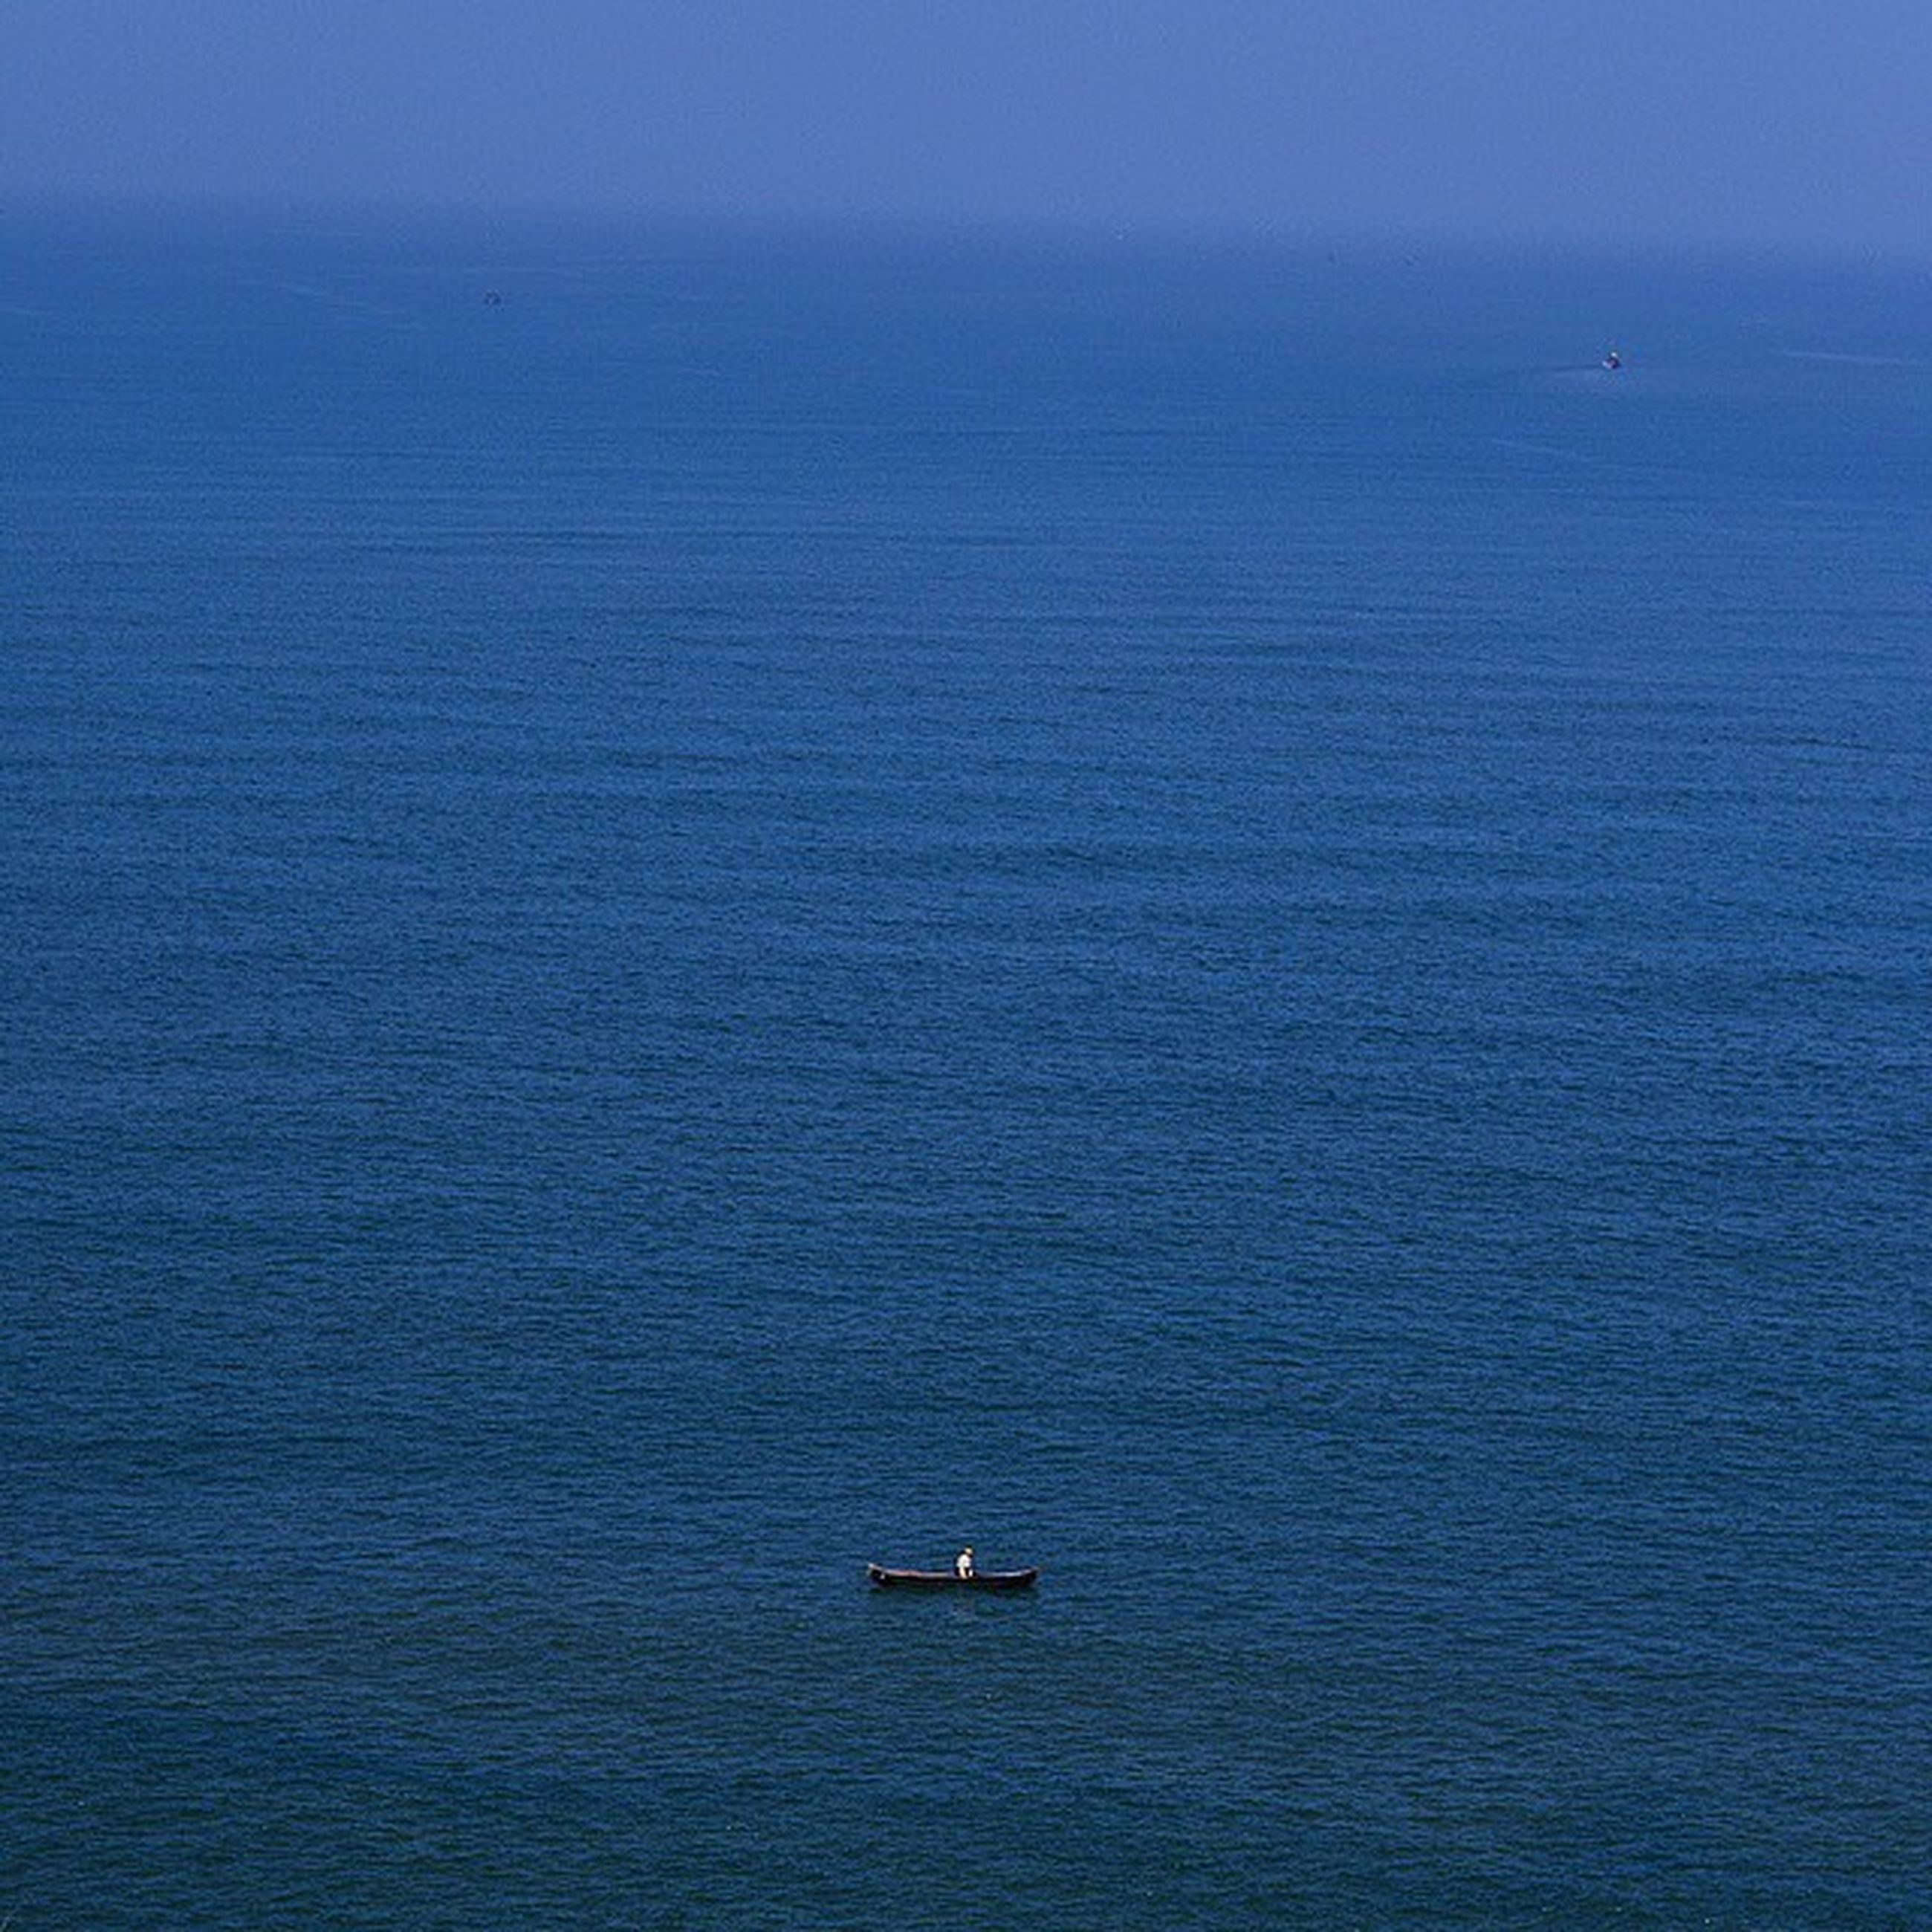 sea, water, waterfront, nautical vessel, transportation, boat, mode of transport, blue, horizon over water, tranquil scene, tranquility, rippled, scenics, beauty in nature, nature, sailing, seascape, idyllic, ocean, copy space